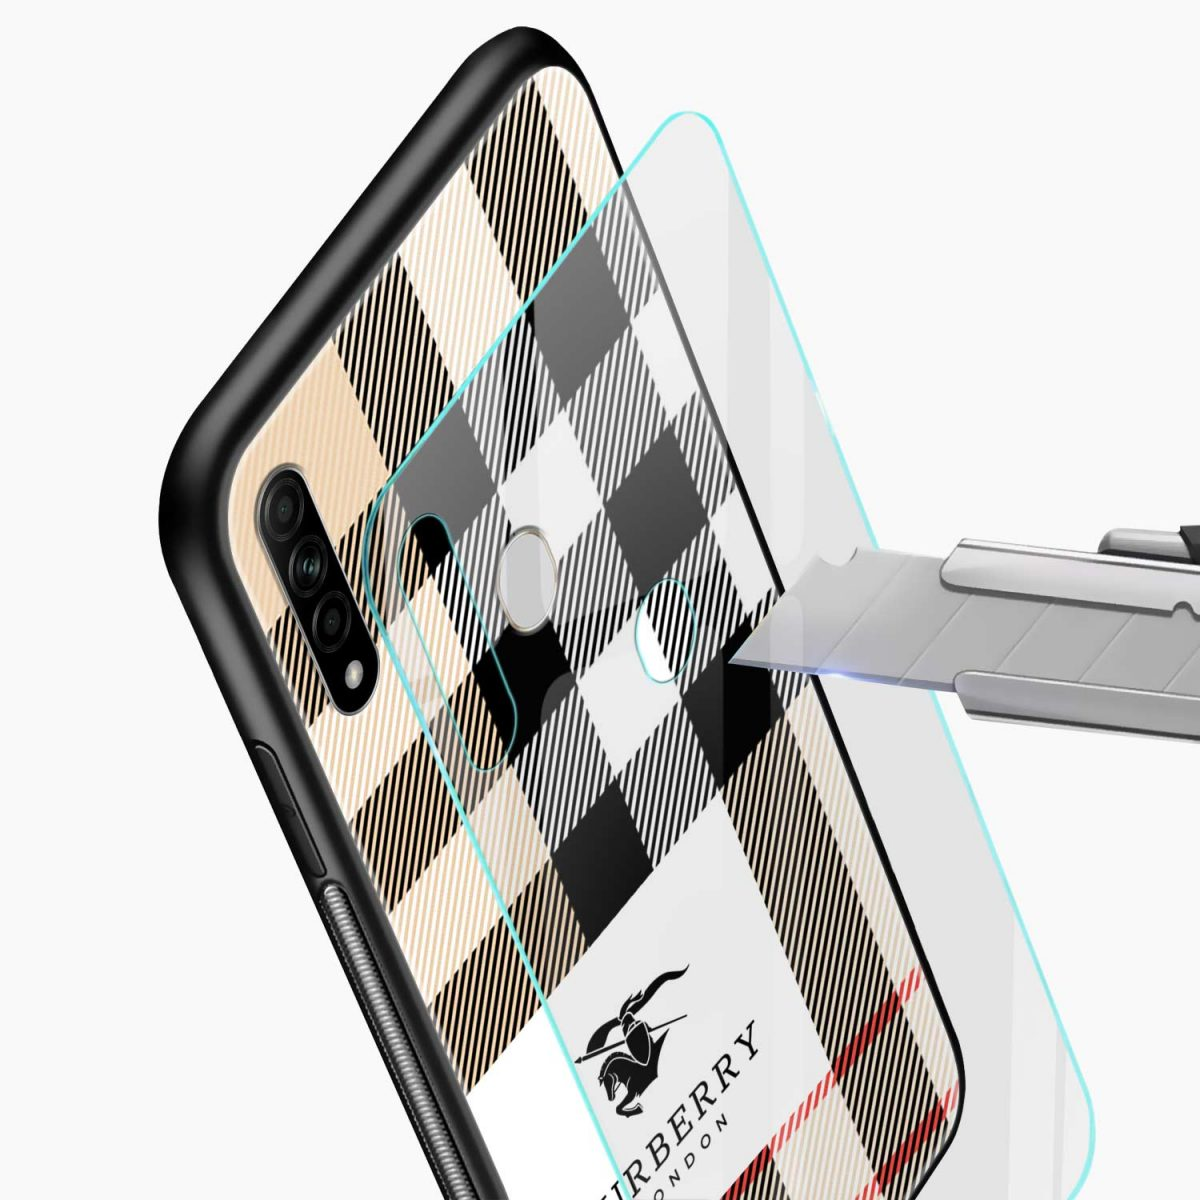 burberry cross lines pattern glass view oppo a31 back cover